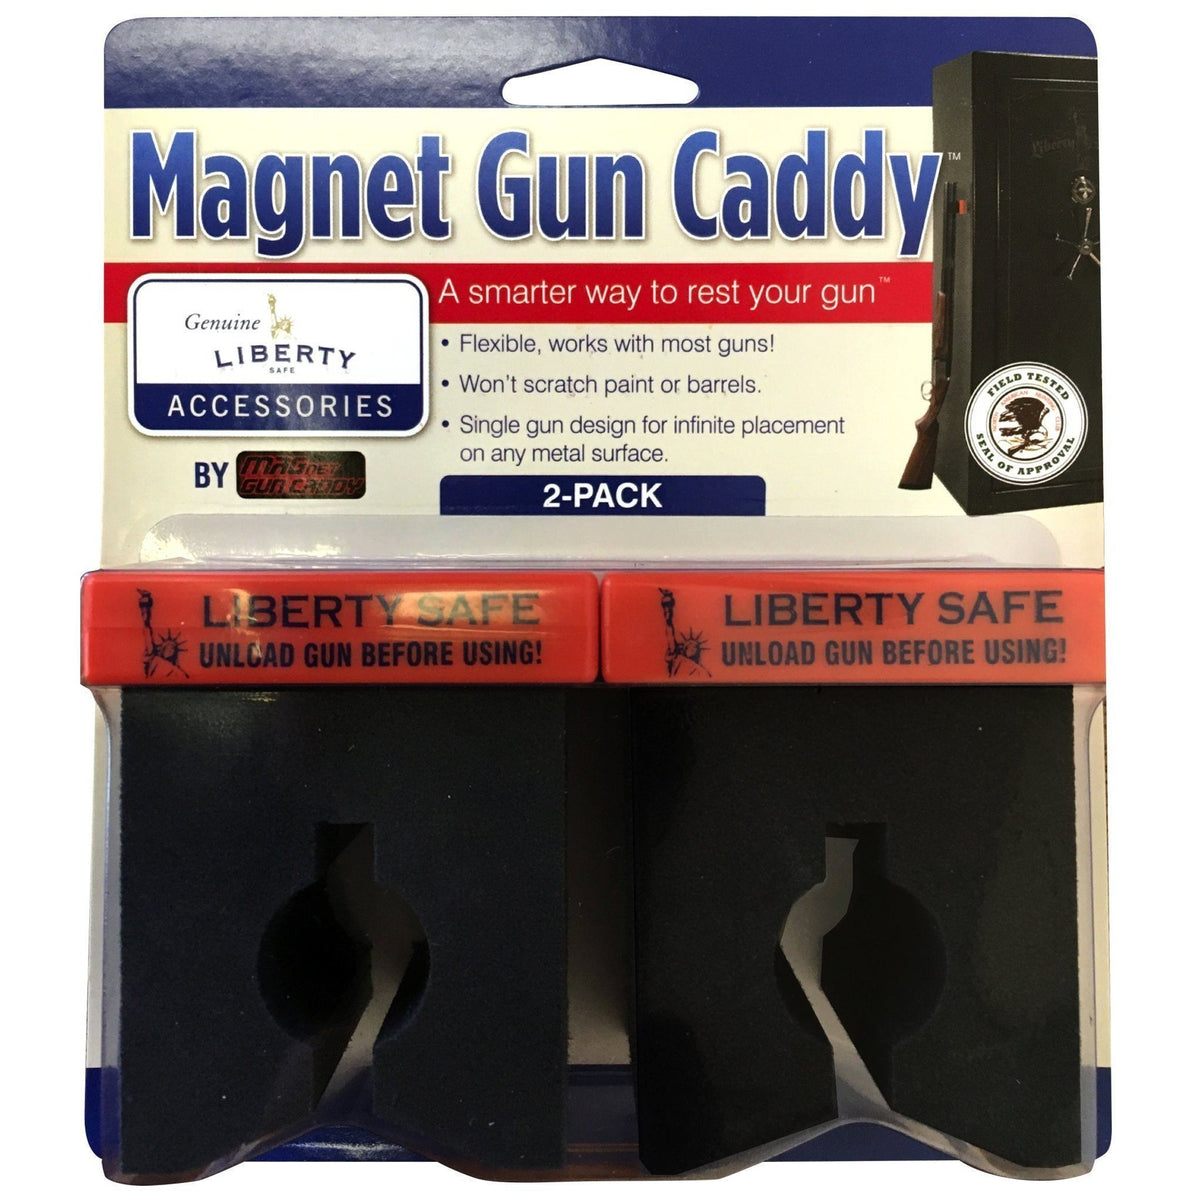 Liberty Safe-accessory-storage-magnet-gun-caddy-2-pack